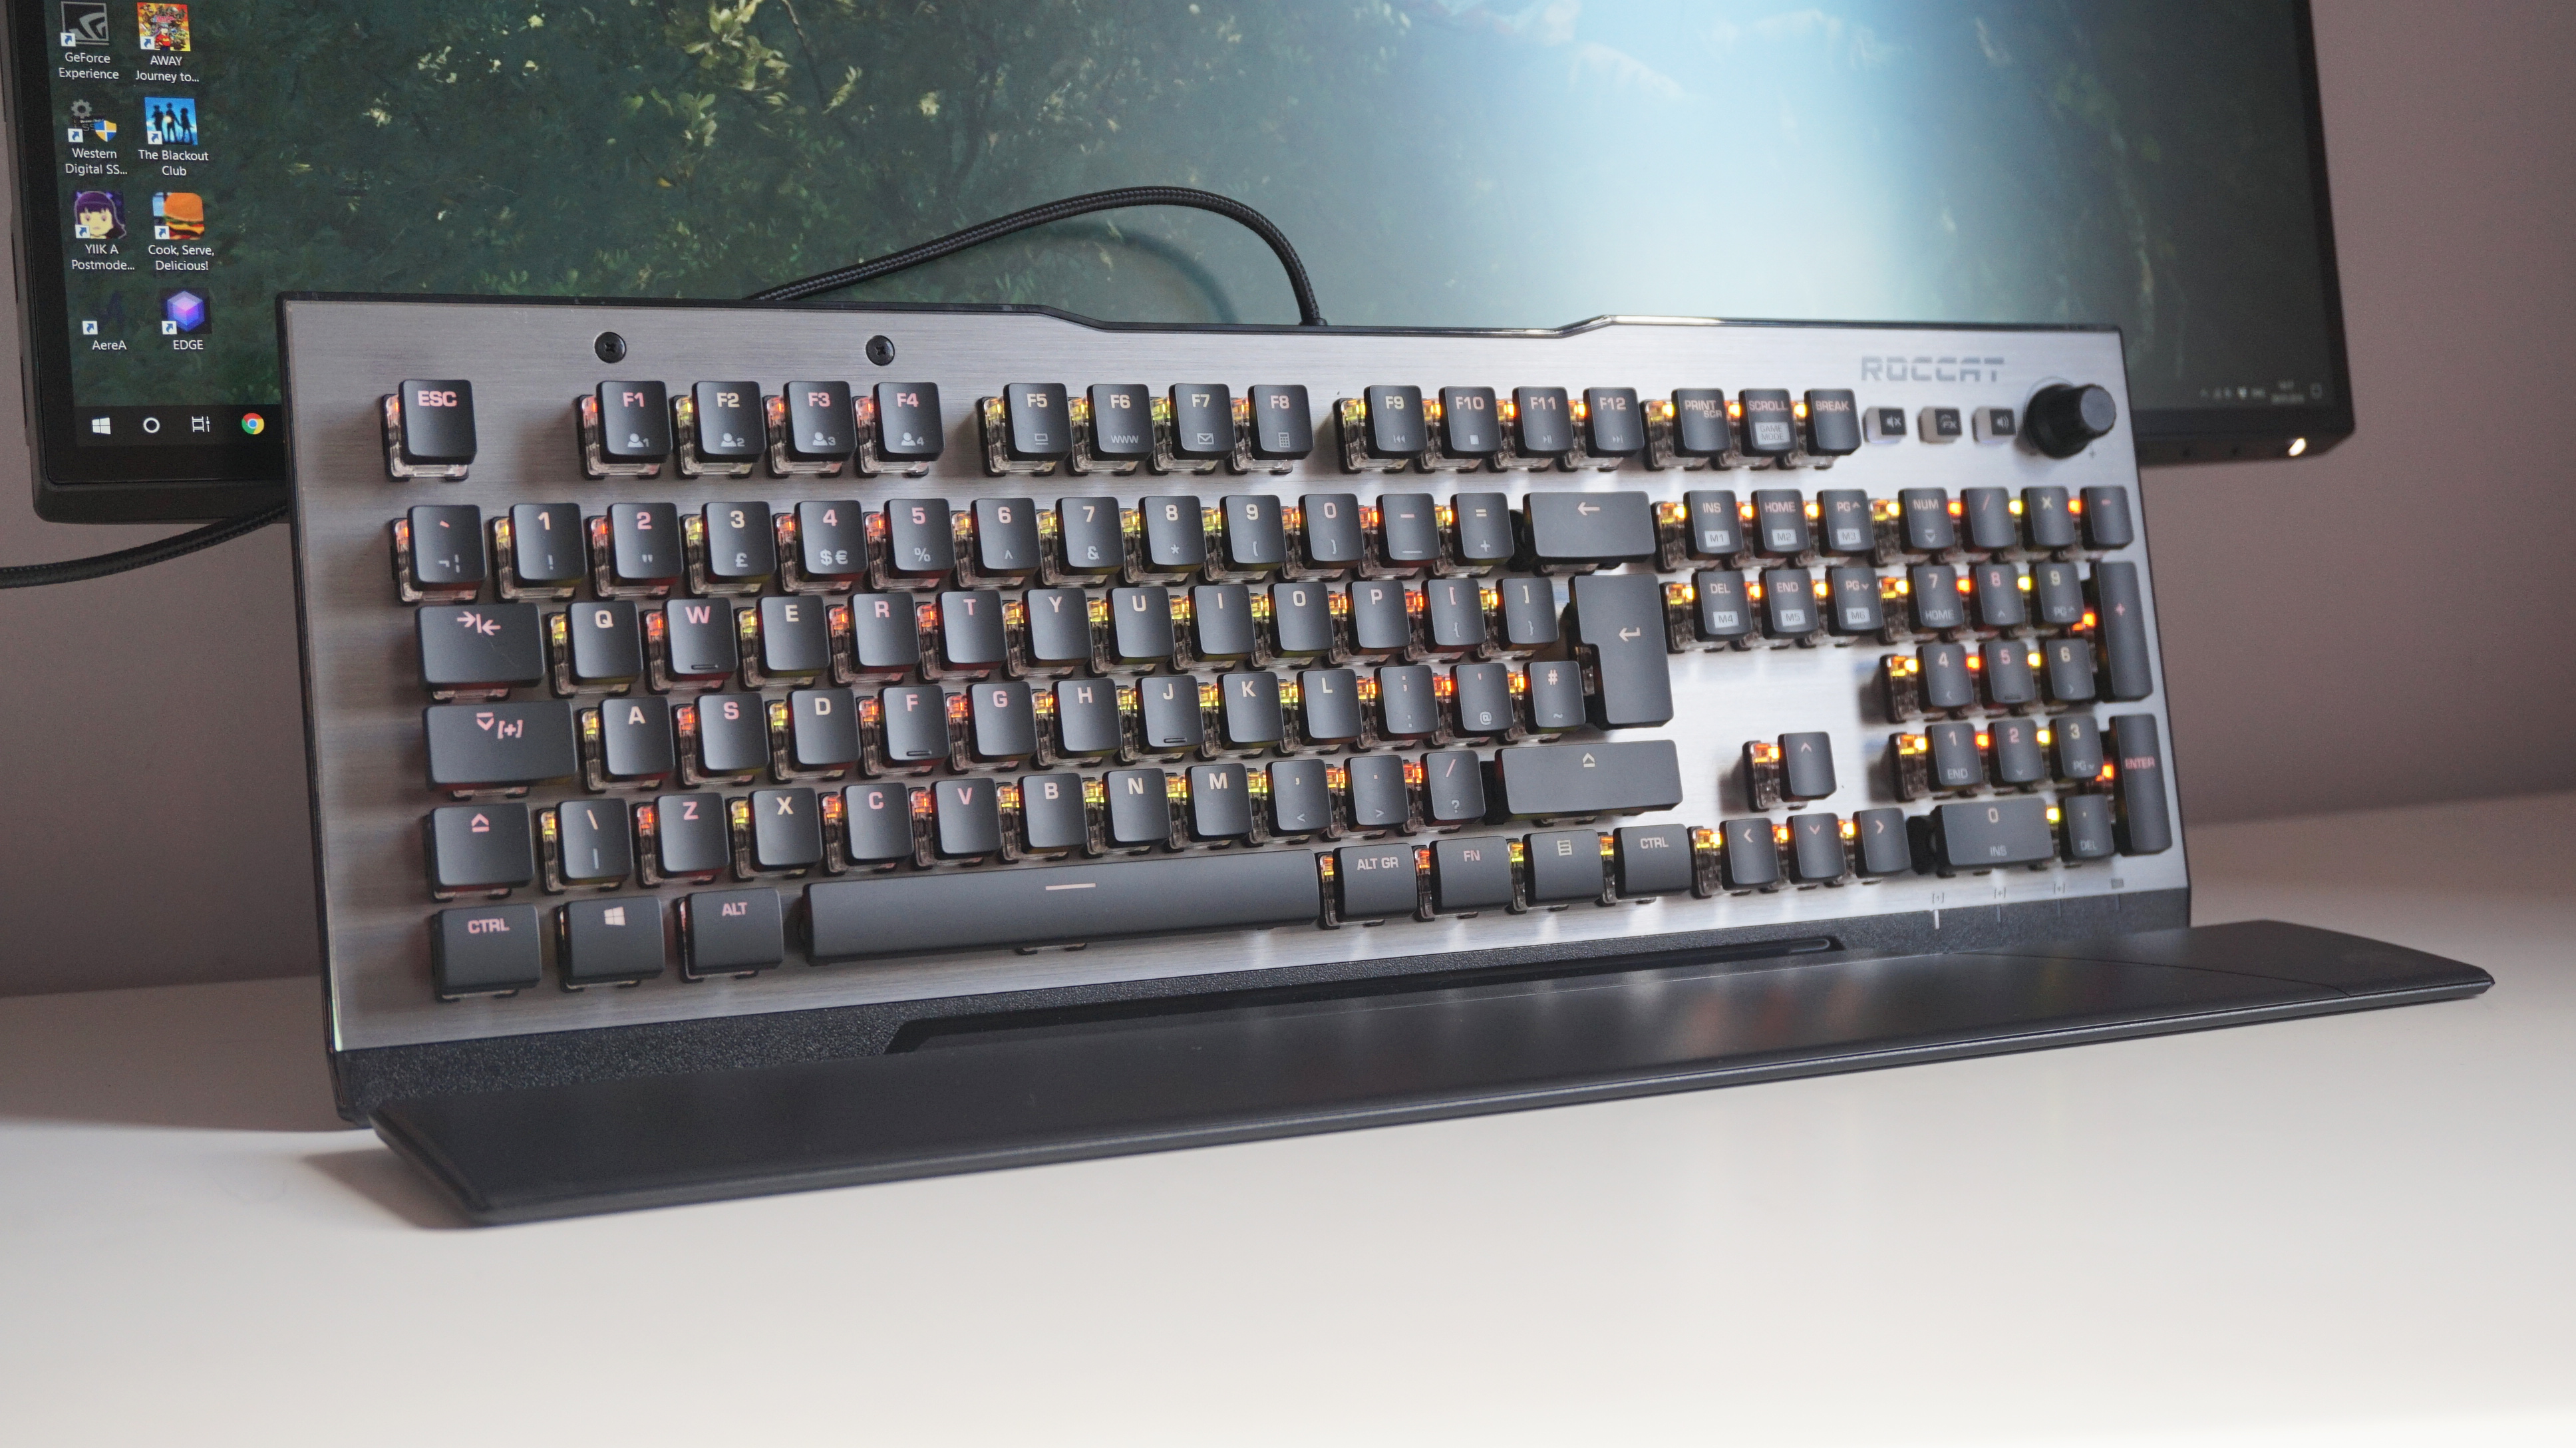 Best gaming keyboard 2019: Top mechanical, membrane and